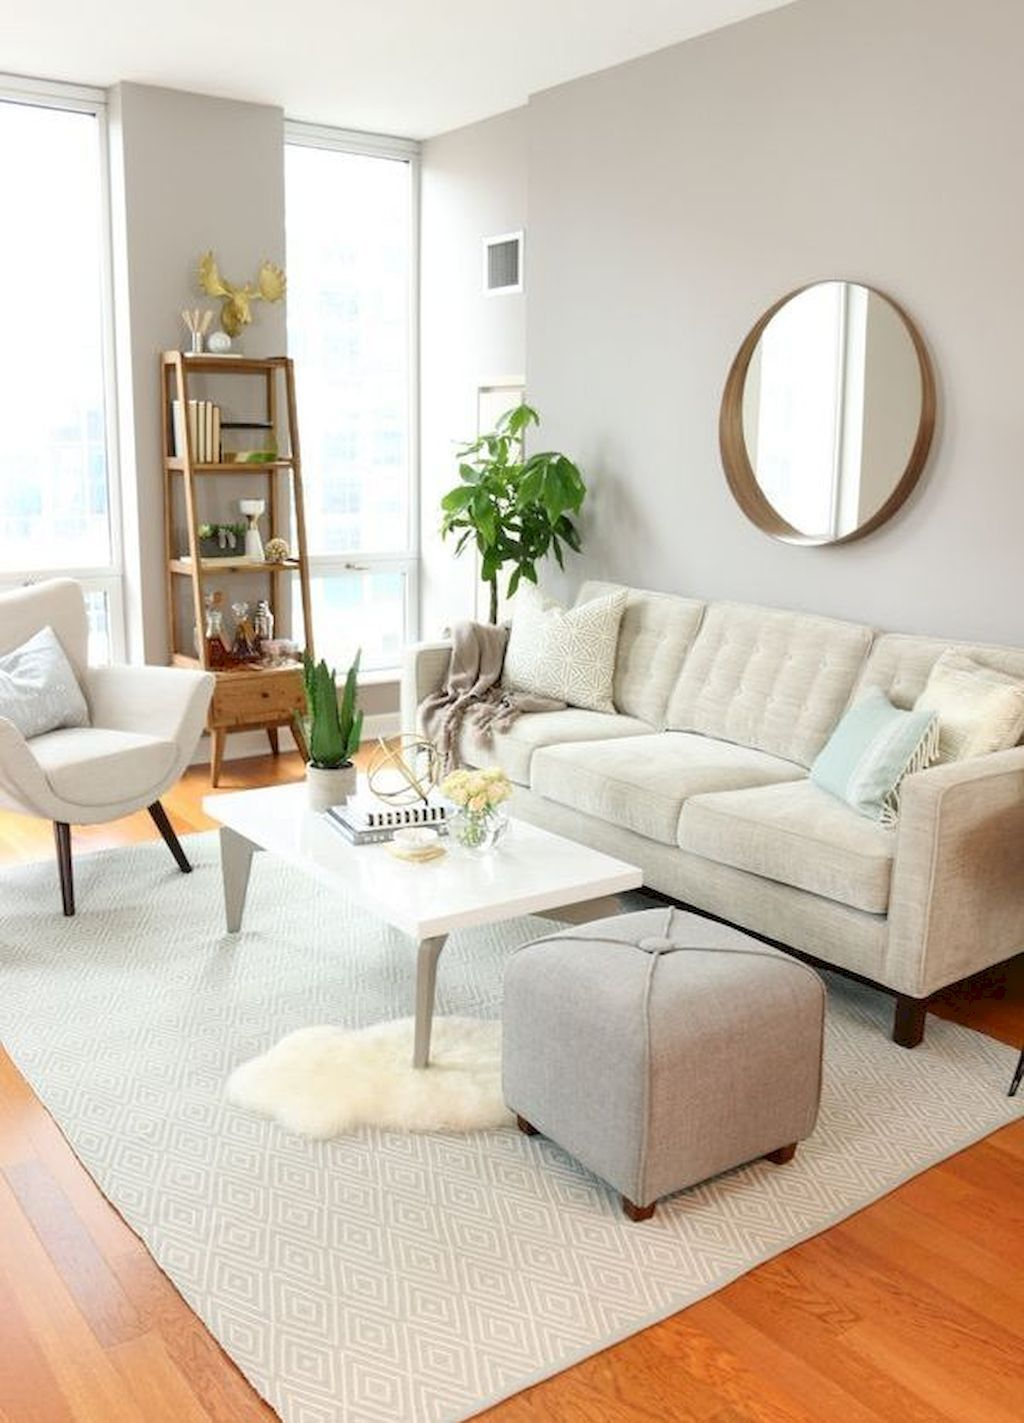 60 Small Apartment Living Room Decorating Ideas #smallapartmentlivingroom